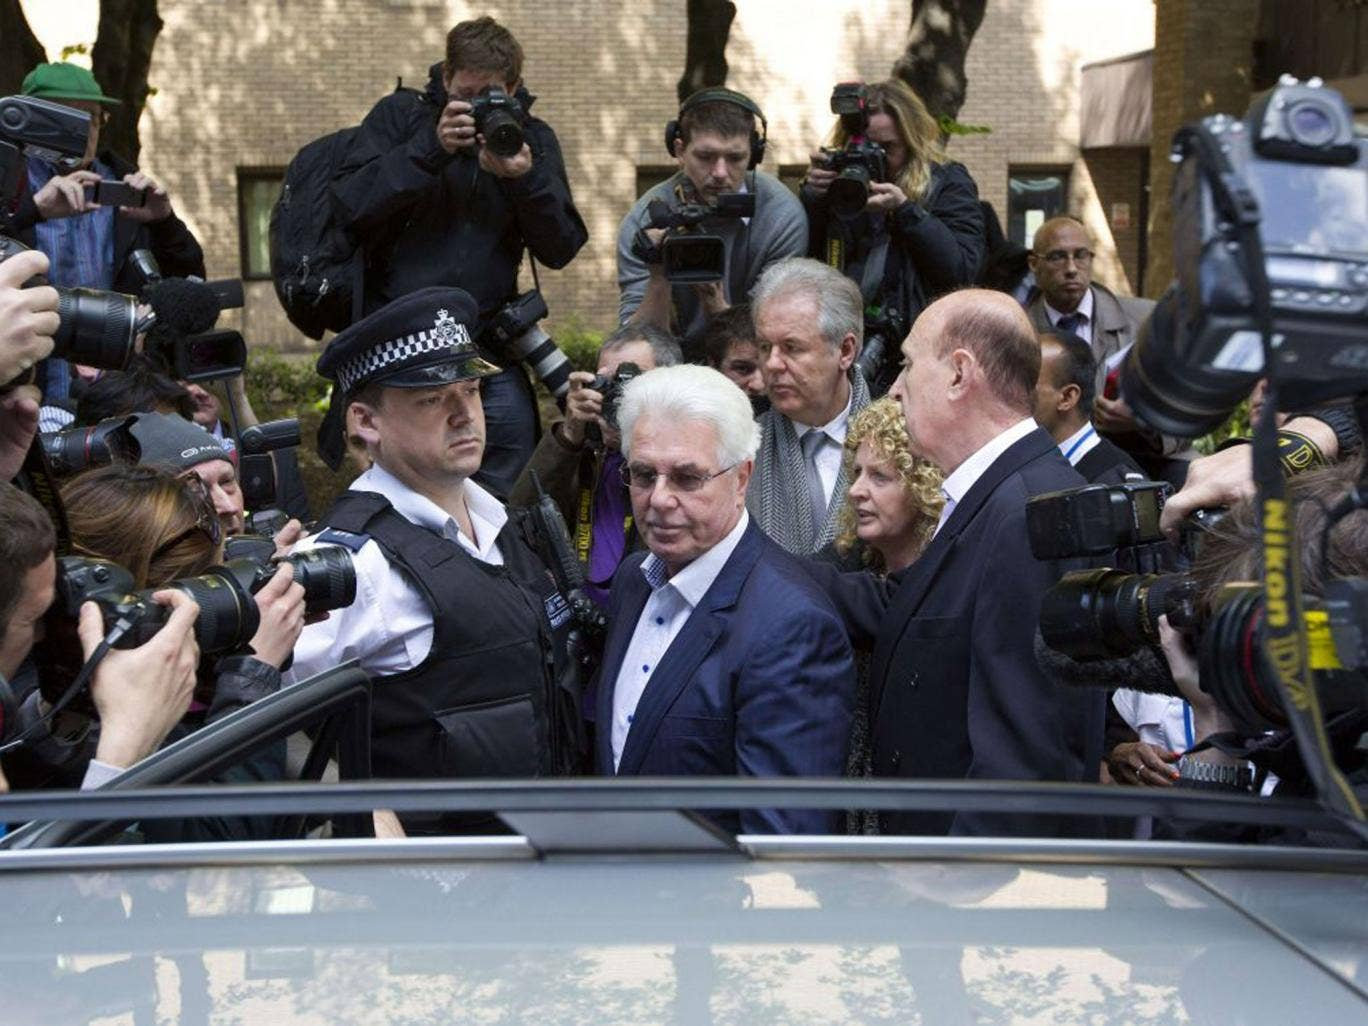 Max Clifford remained silent when he left Southwark Crown Court